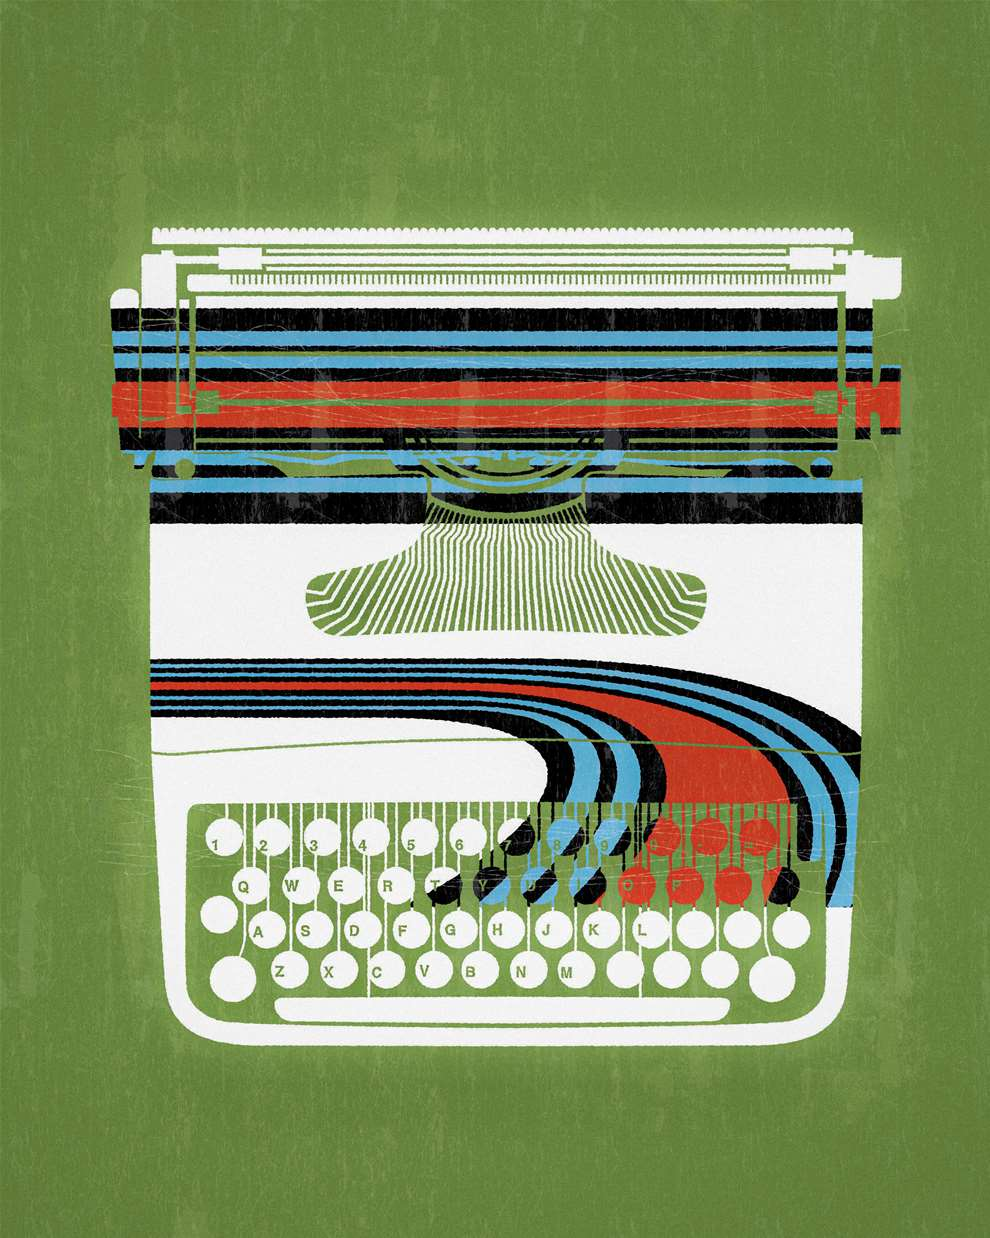 Paul Wearing, Digital and vector style illustration of a typewriter.